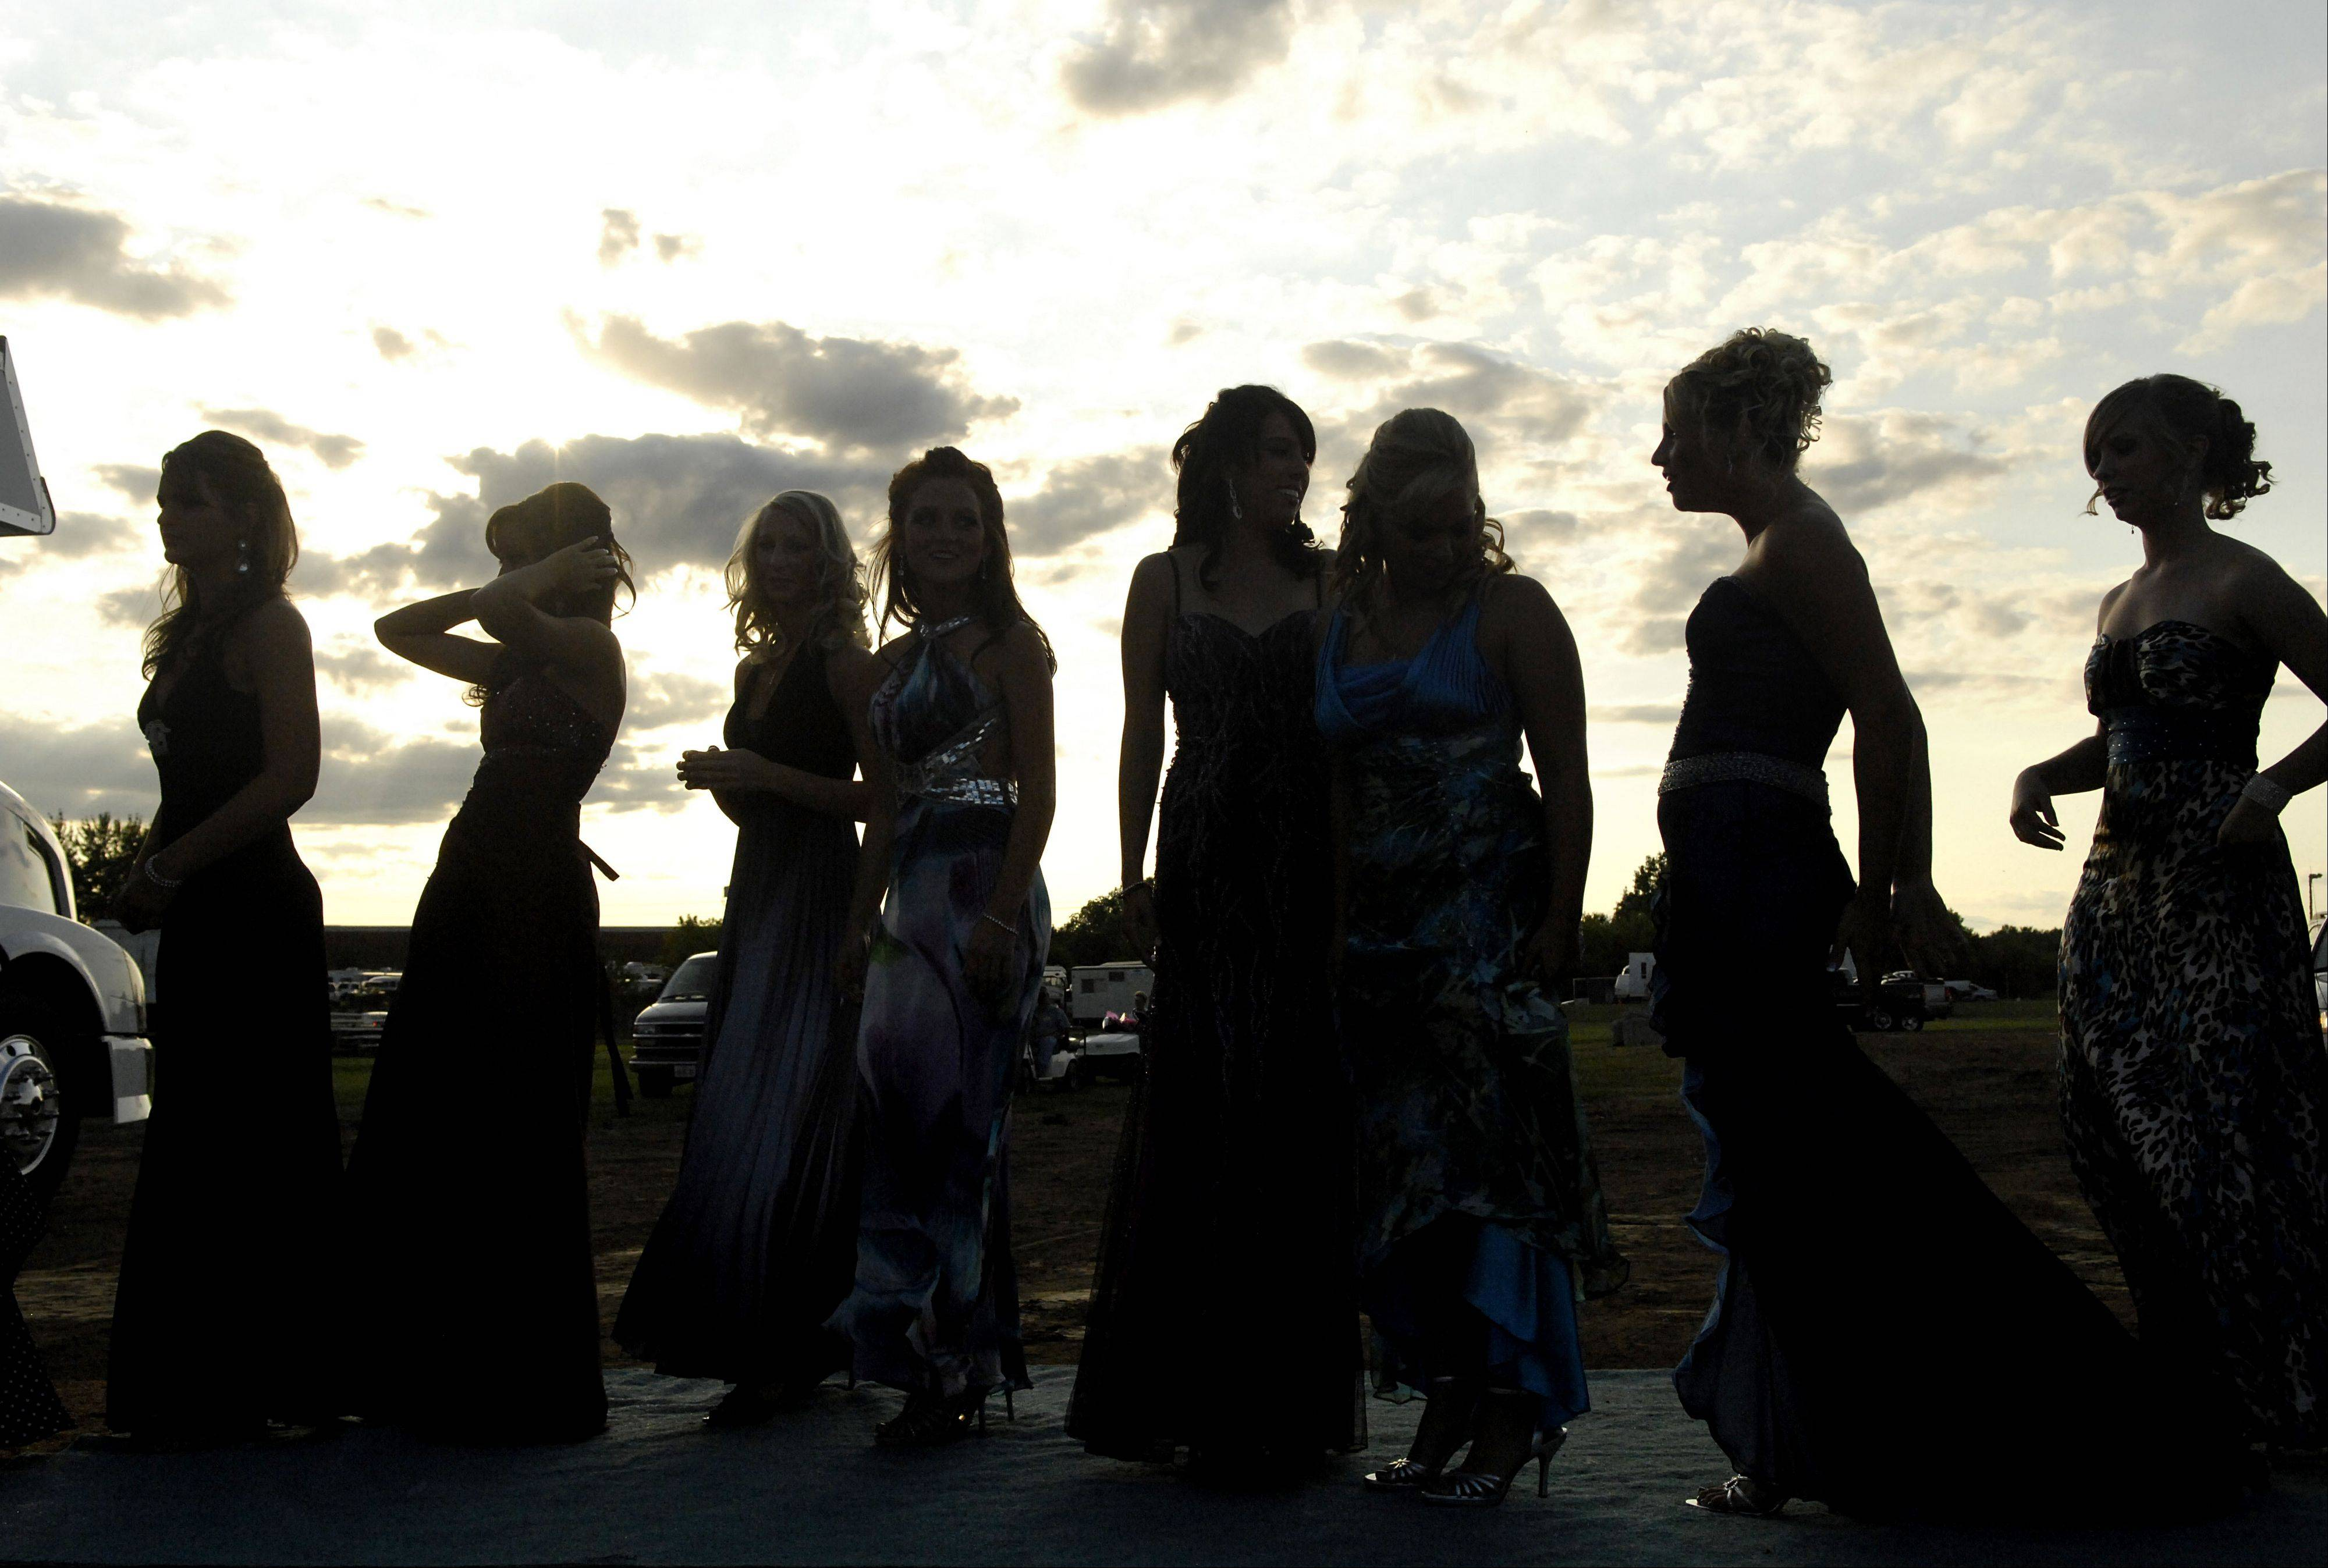 Eight of the 17 contestants for the Miss McHenry County Queen 2009 pageant line up on the carpet behind the stage in the Grandstand area at the McHenry County Fair in Woodstock. This year's pageant takes place at 7 p.m. today, Aug. 3.